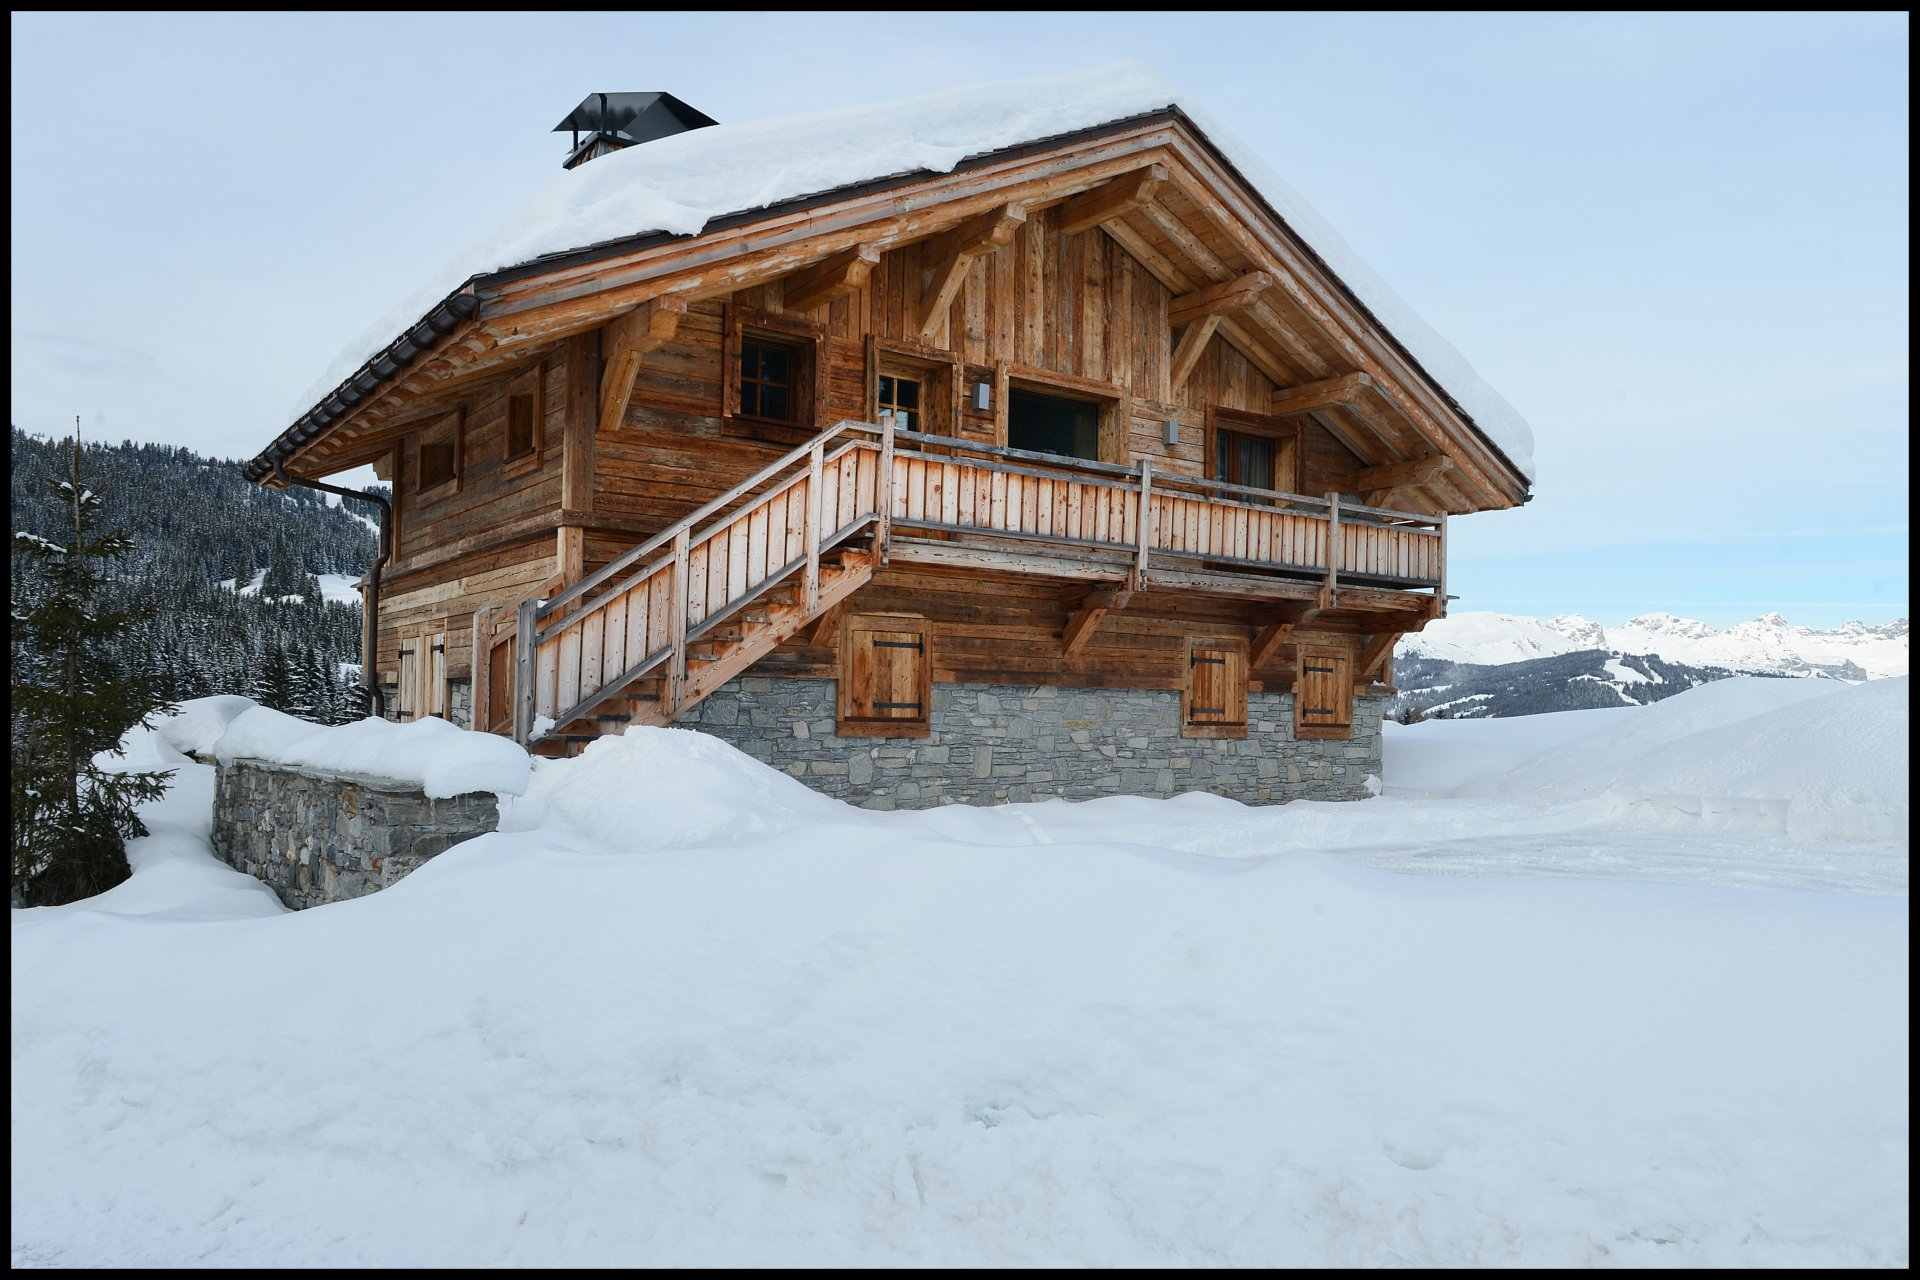 Chalet ISBA Chalet in Megeve